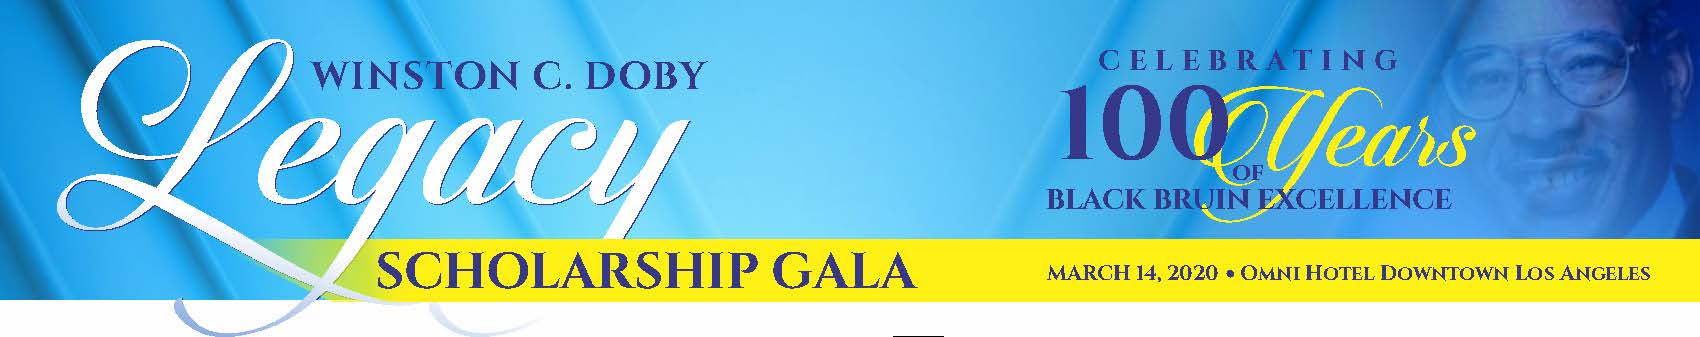 Winston C. Doby Legacy Scholarship Gala Ad Book